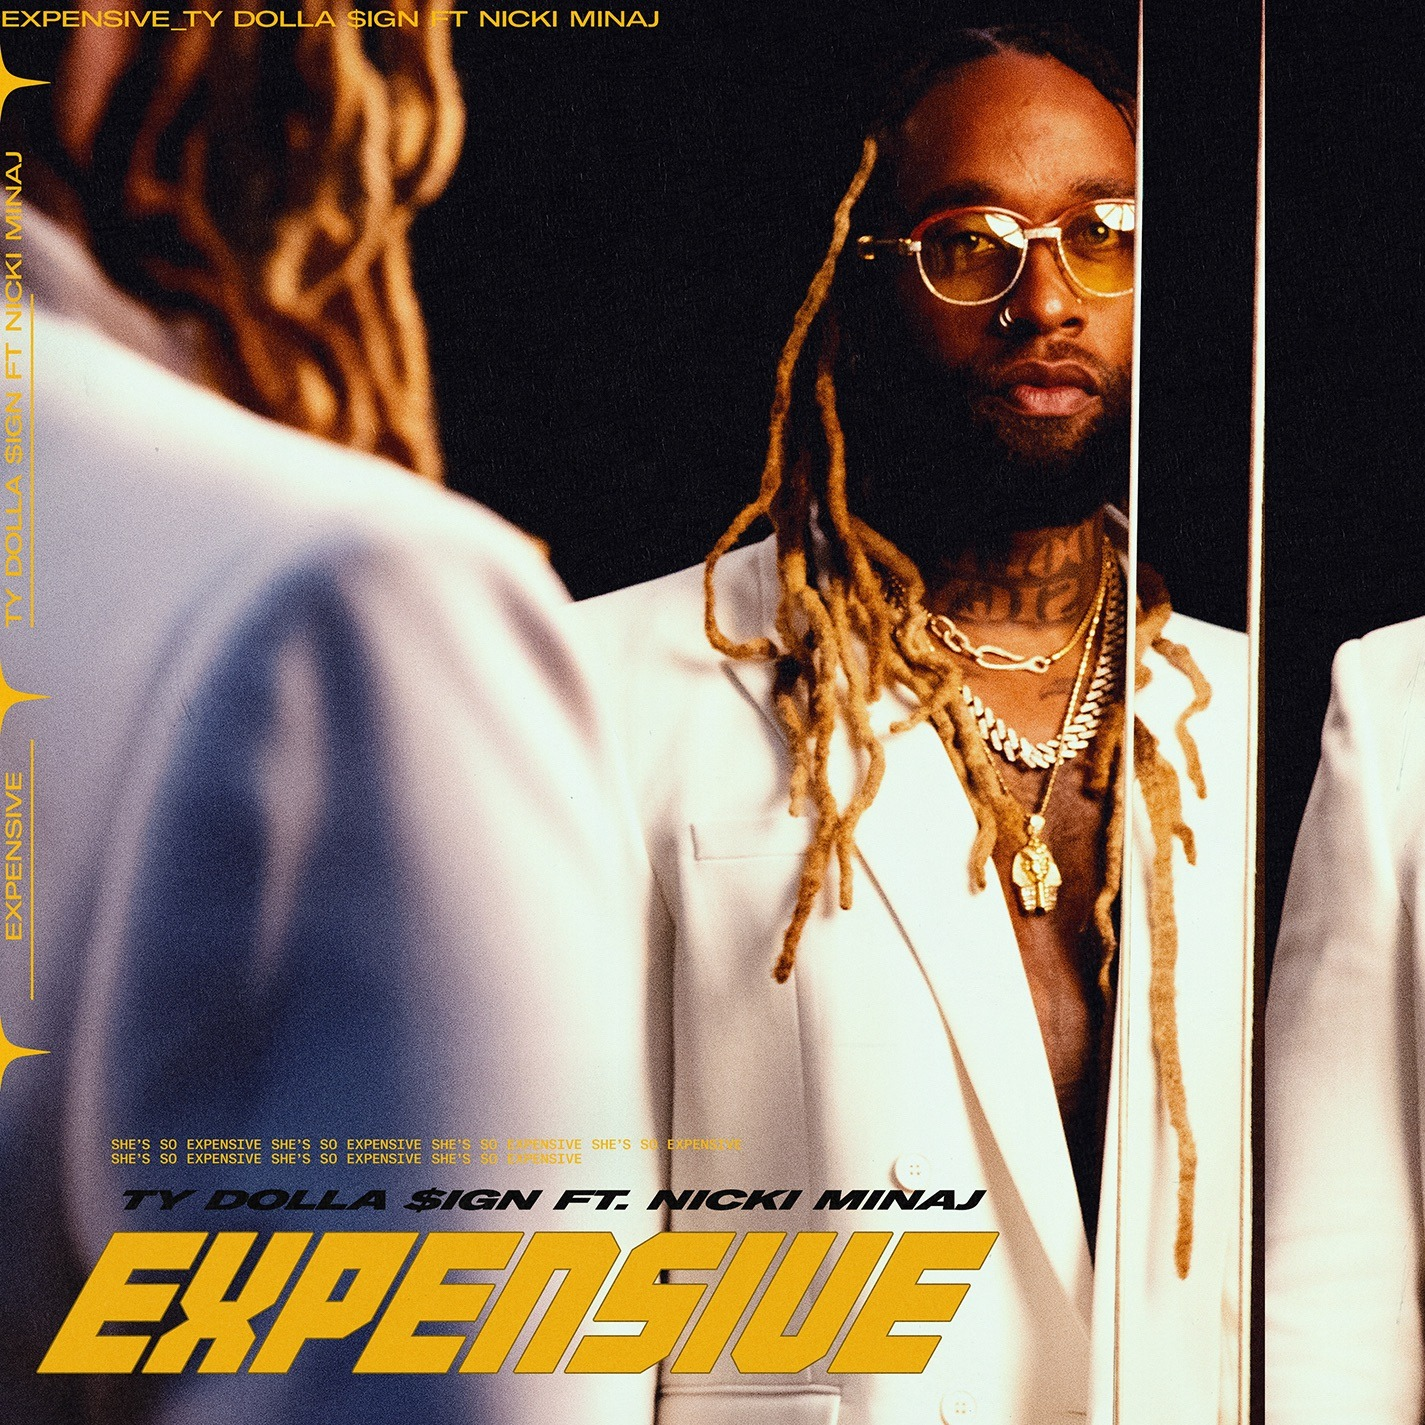 Ty Dolla $ign feat. Nicki Minaj – Expensive